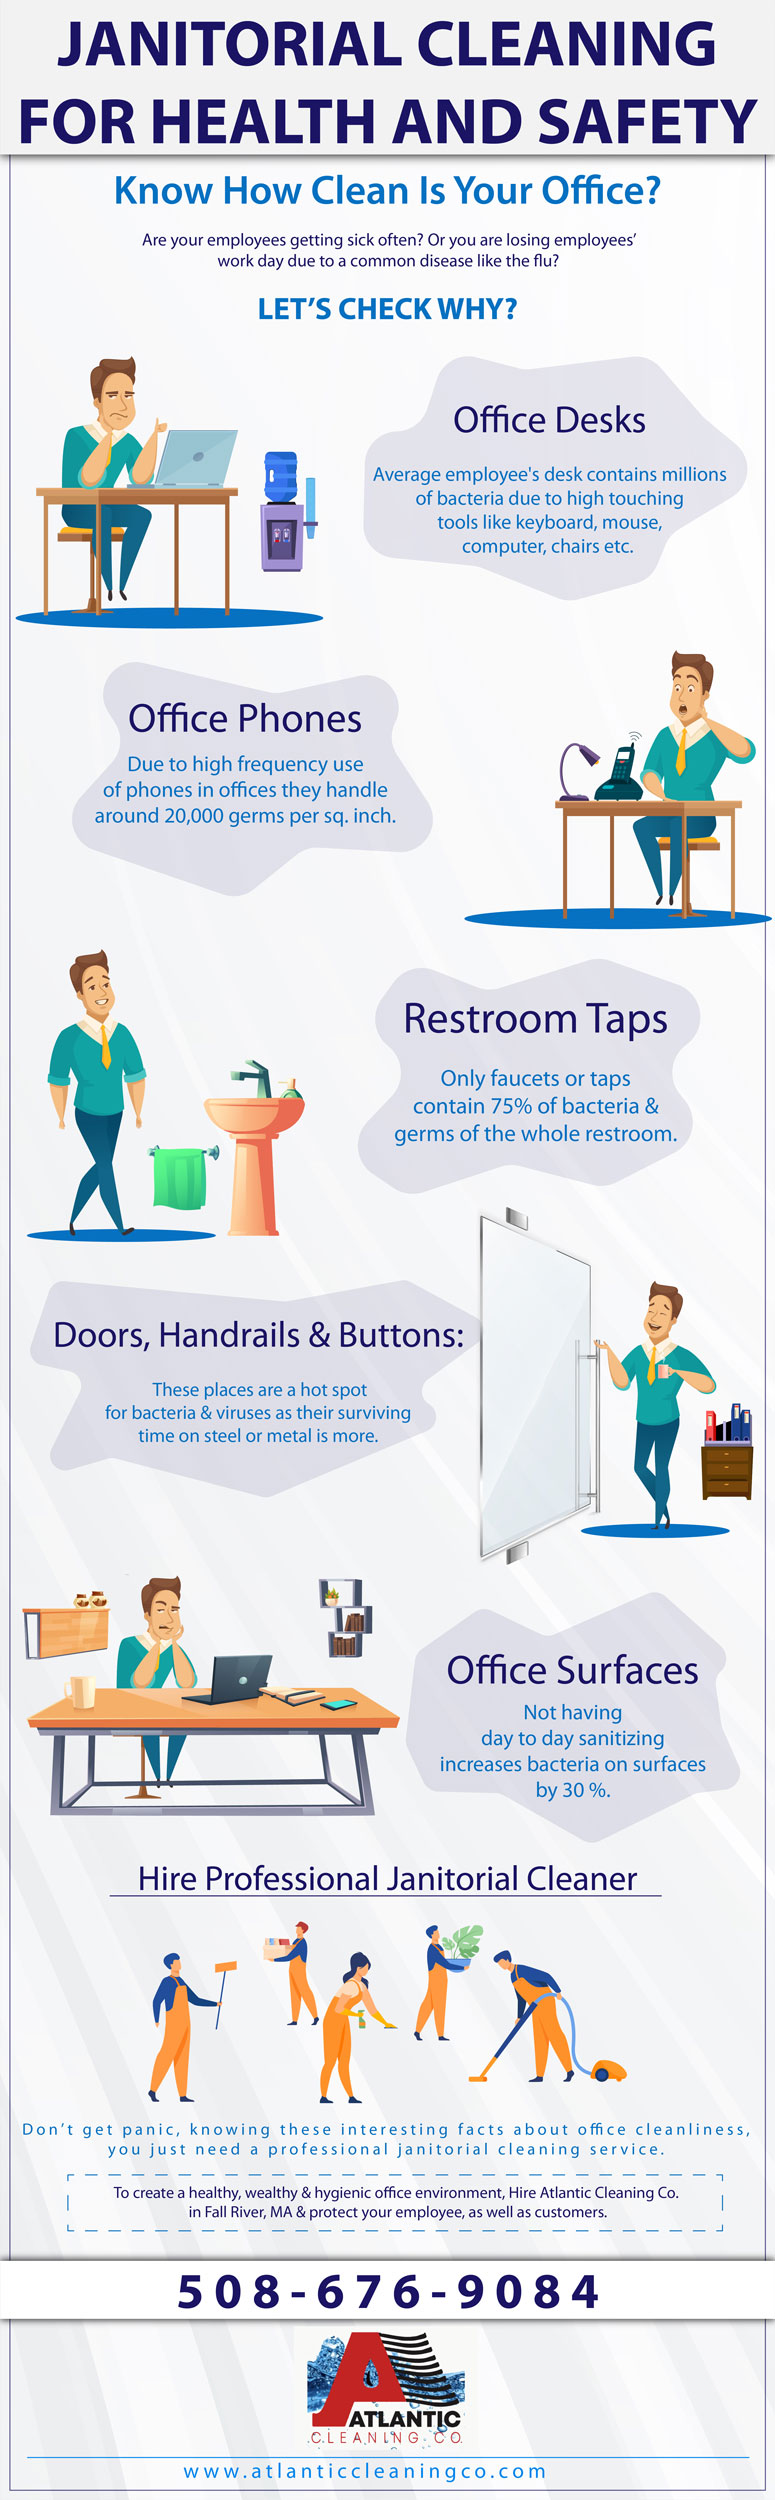 Janitorial Cleaning For Health - Know-How Clean is your Office?